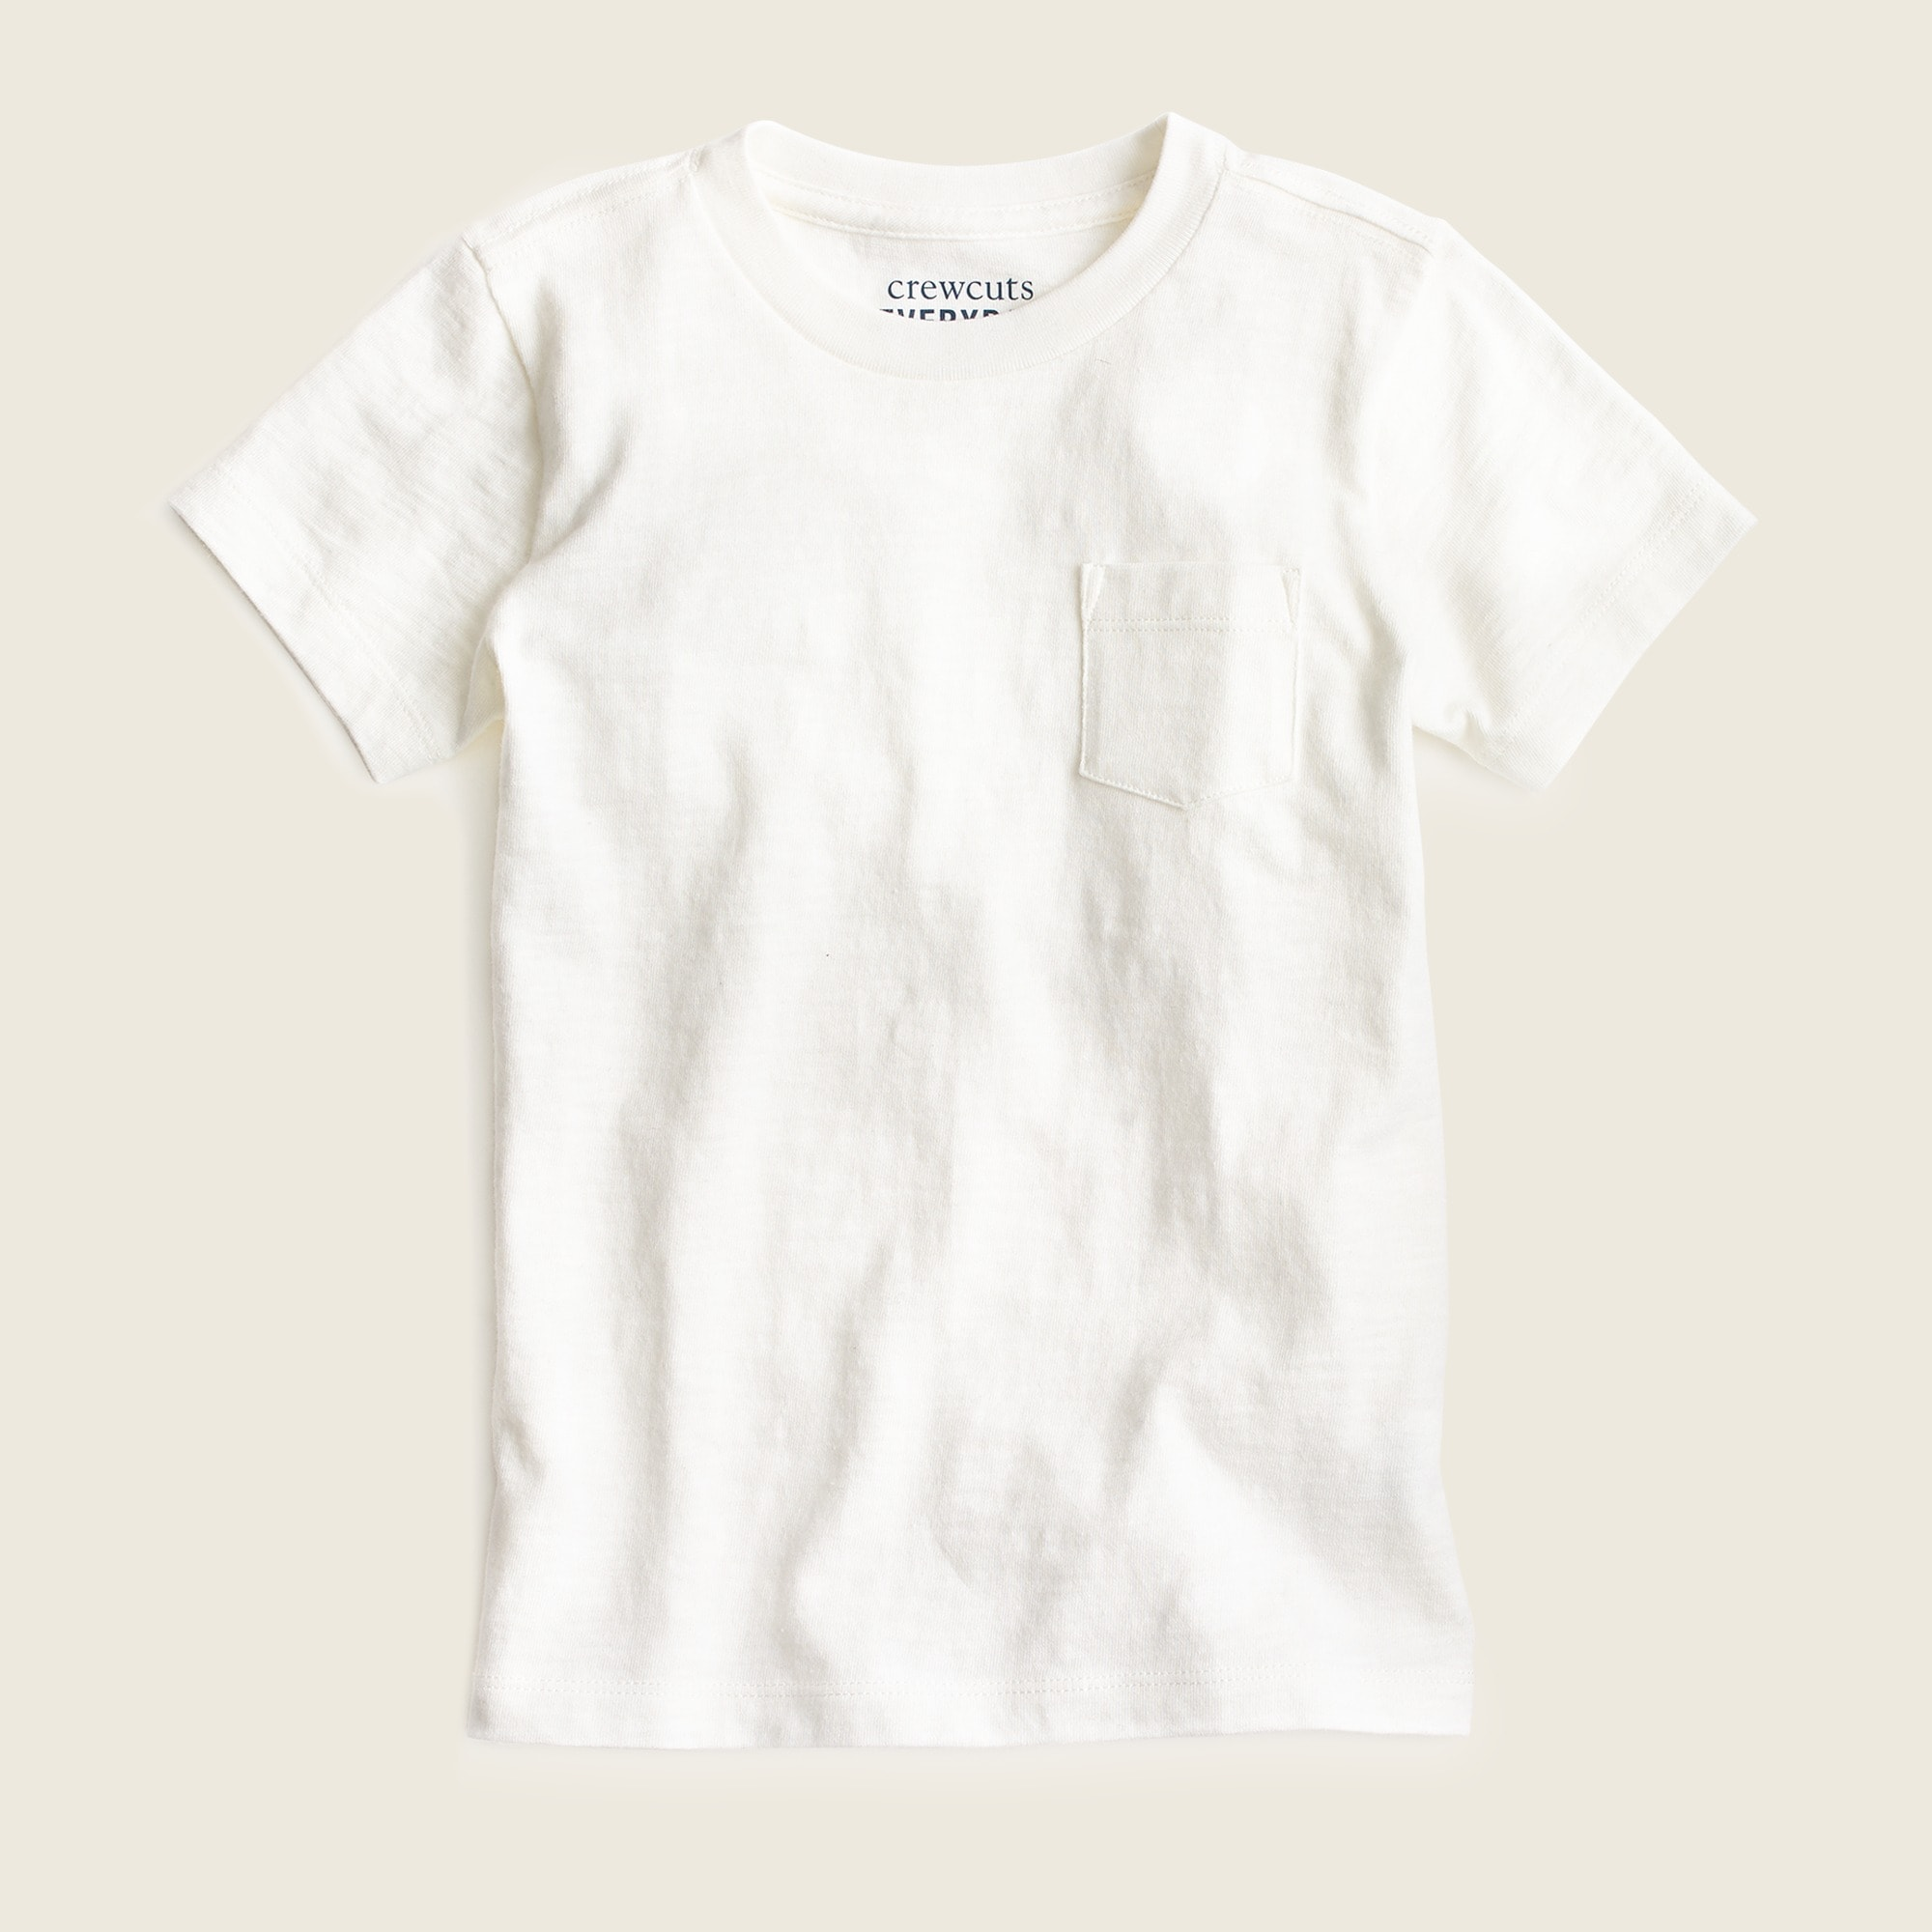 Boys' pocket T-shirt in slub cotton boy new arrivals c